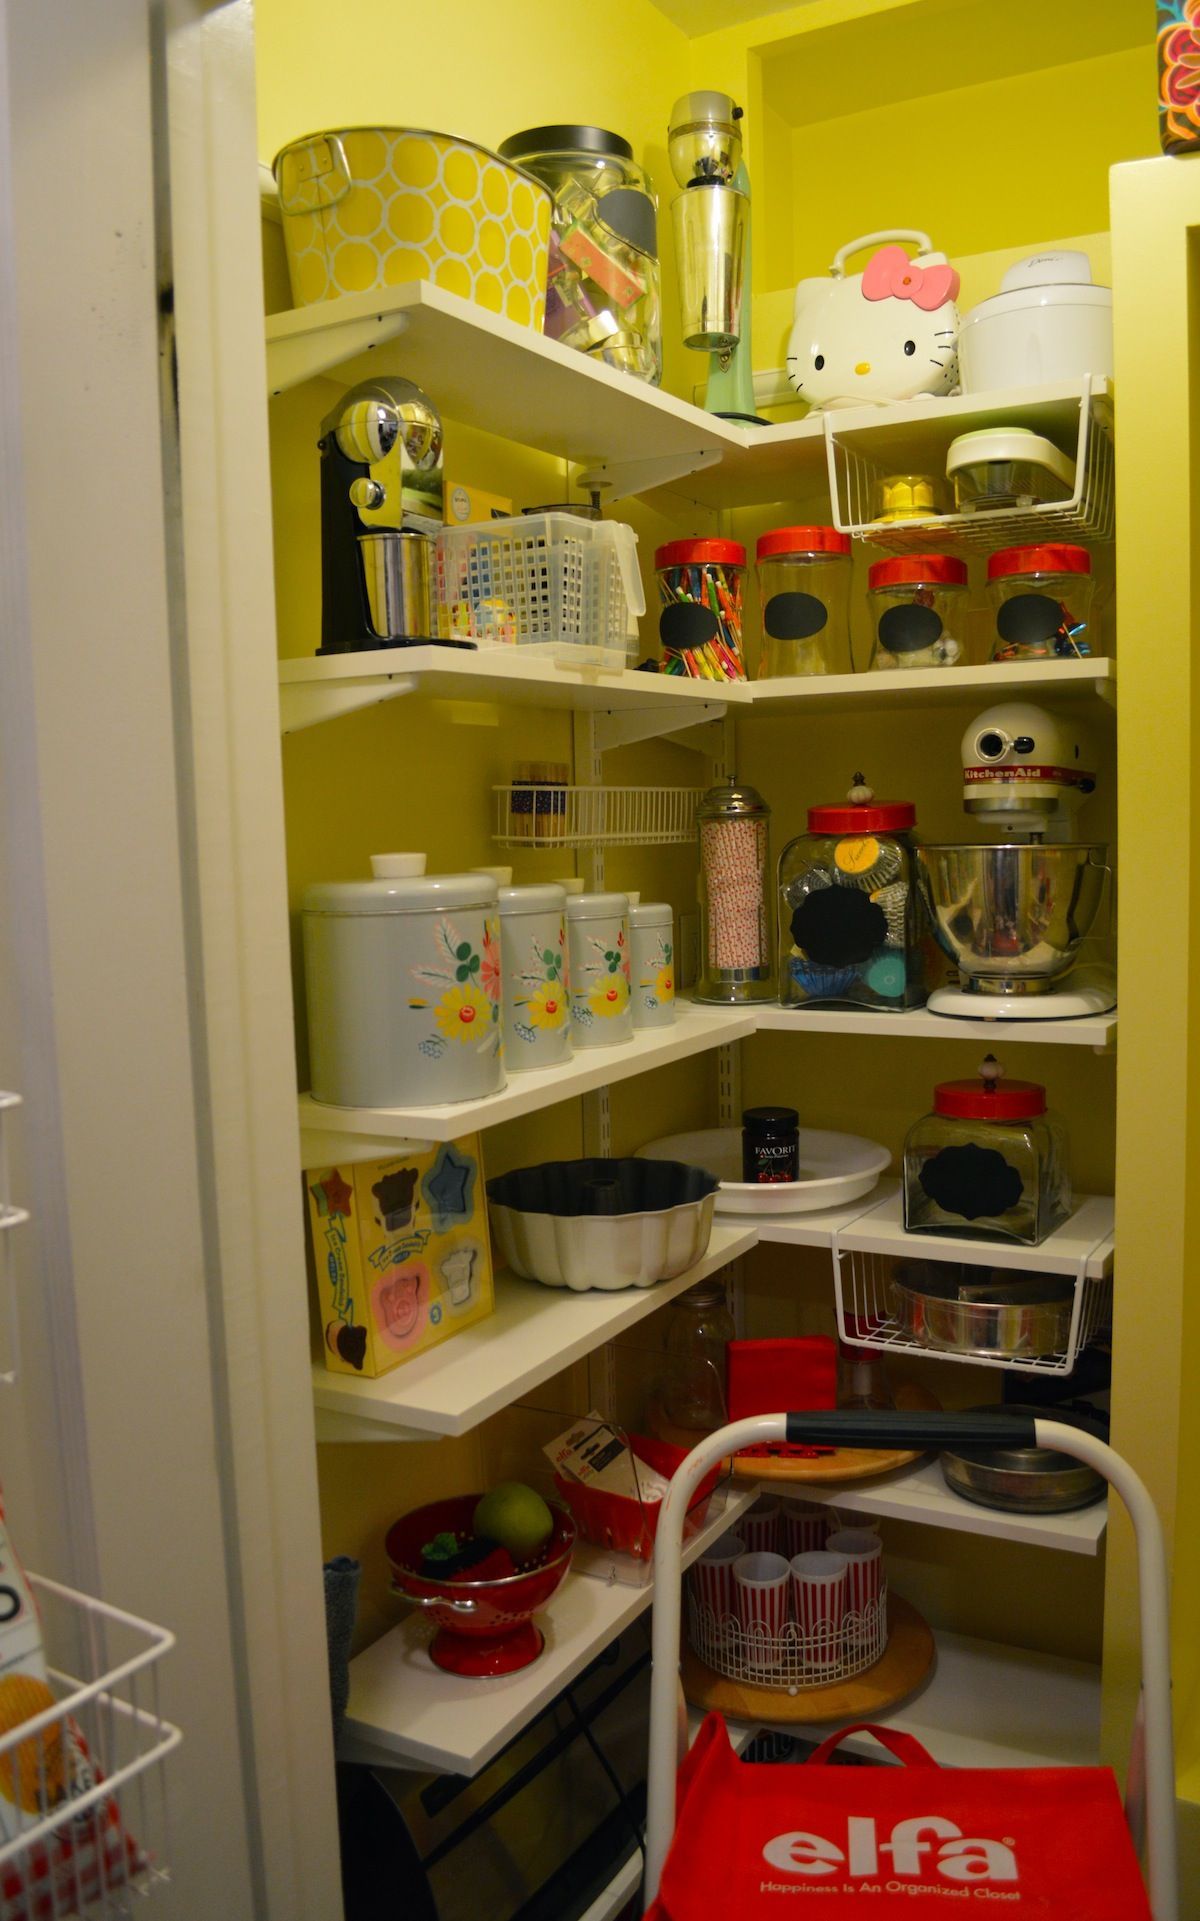 Container Store Kitchen | So Thrilled To Have Our New Elfa Kitchen Pantry From The Container